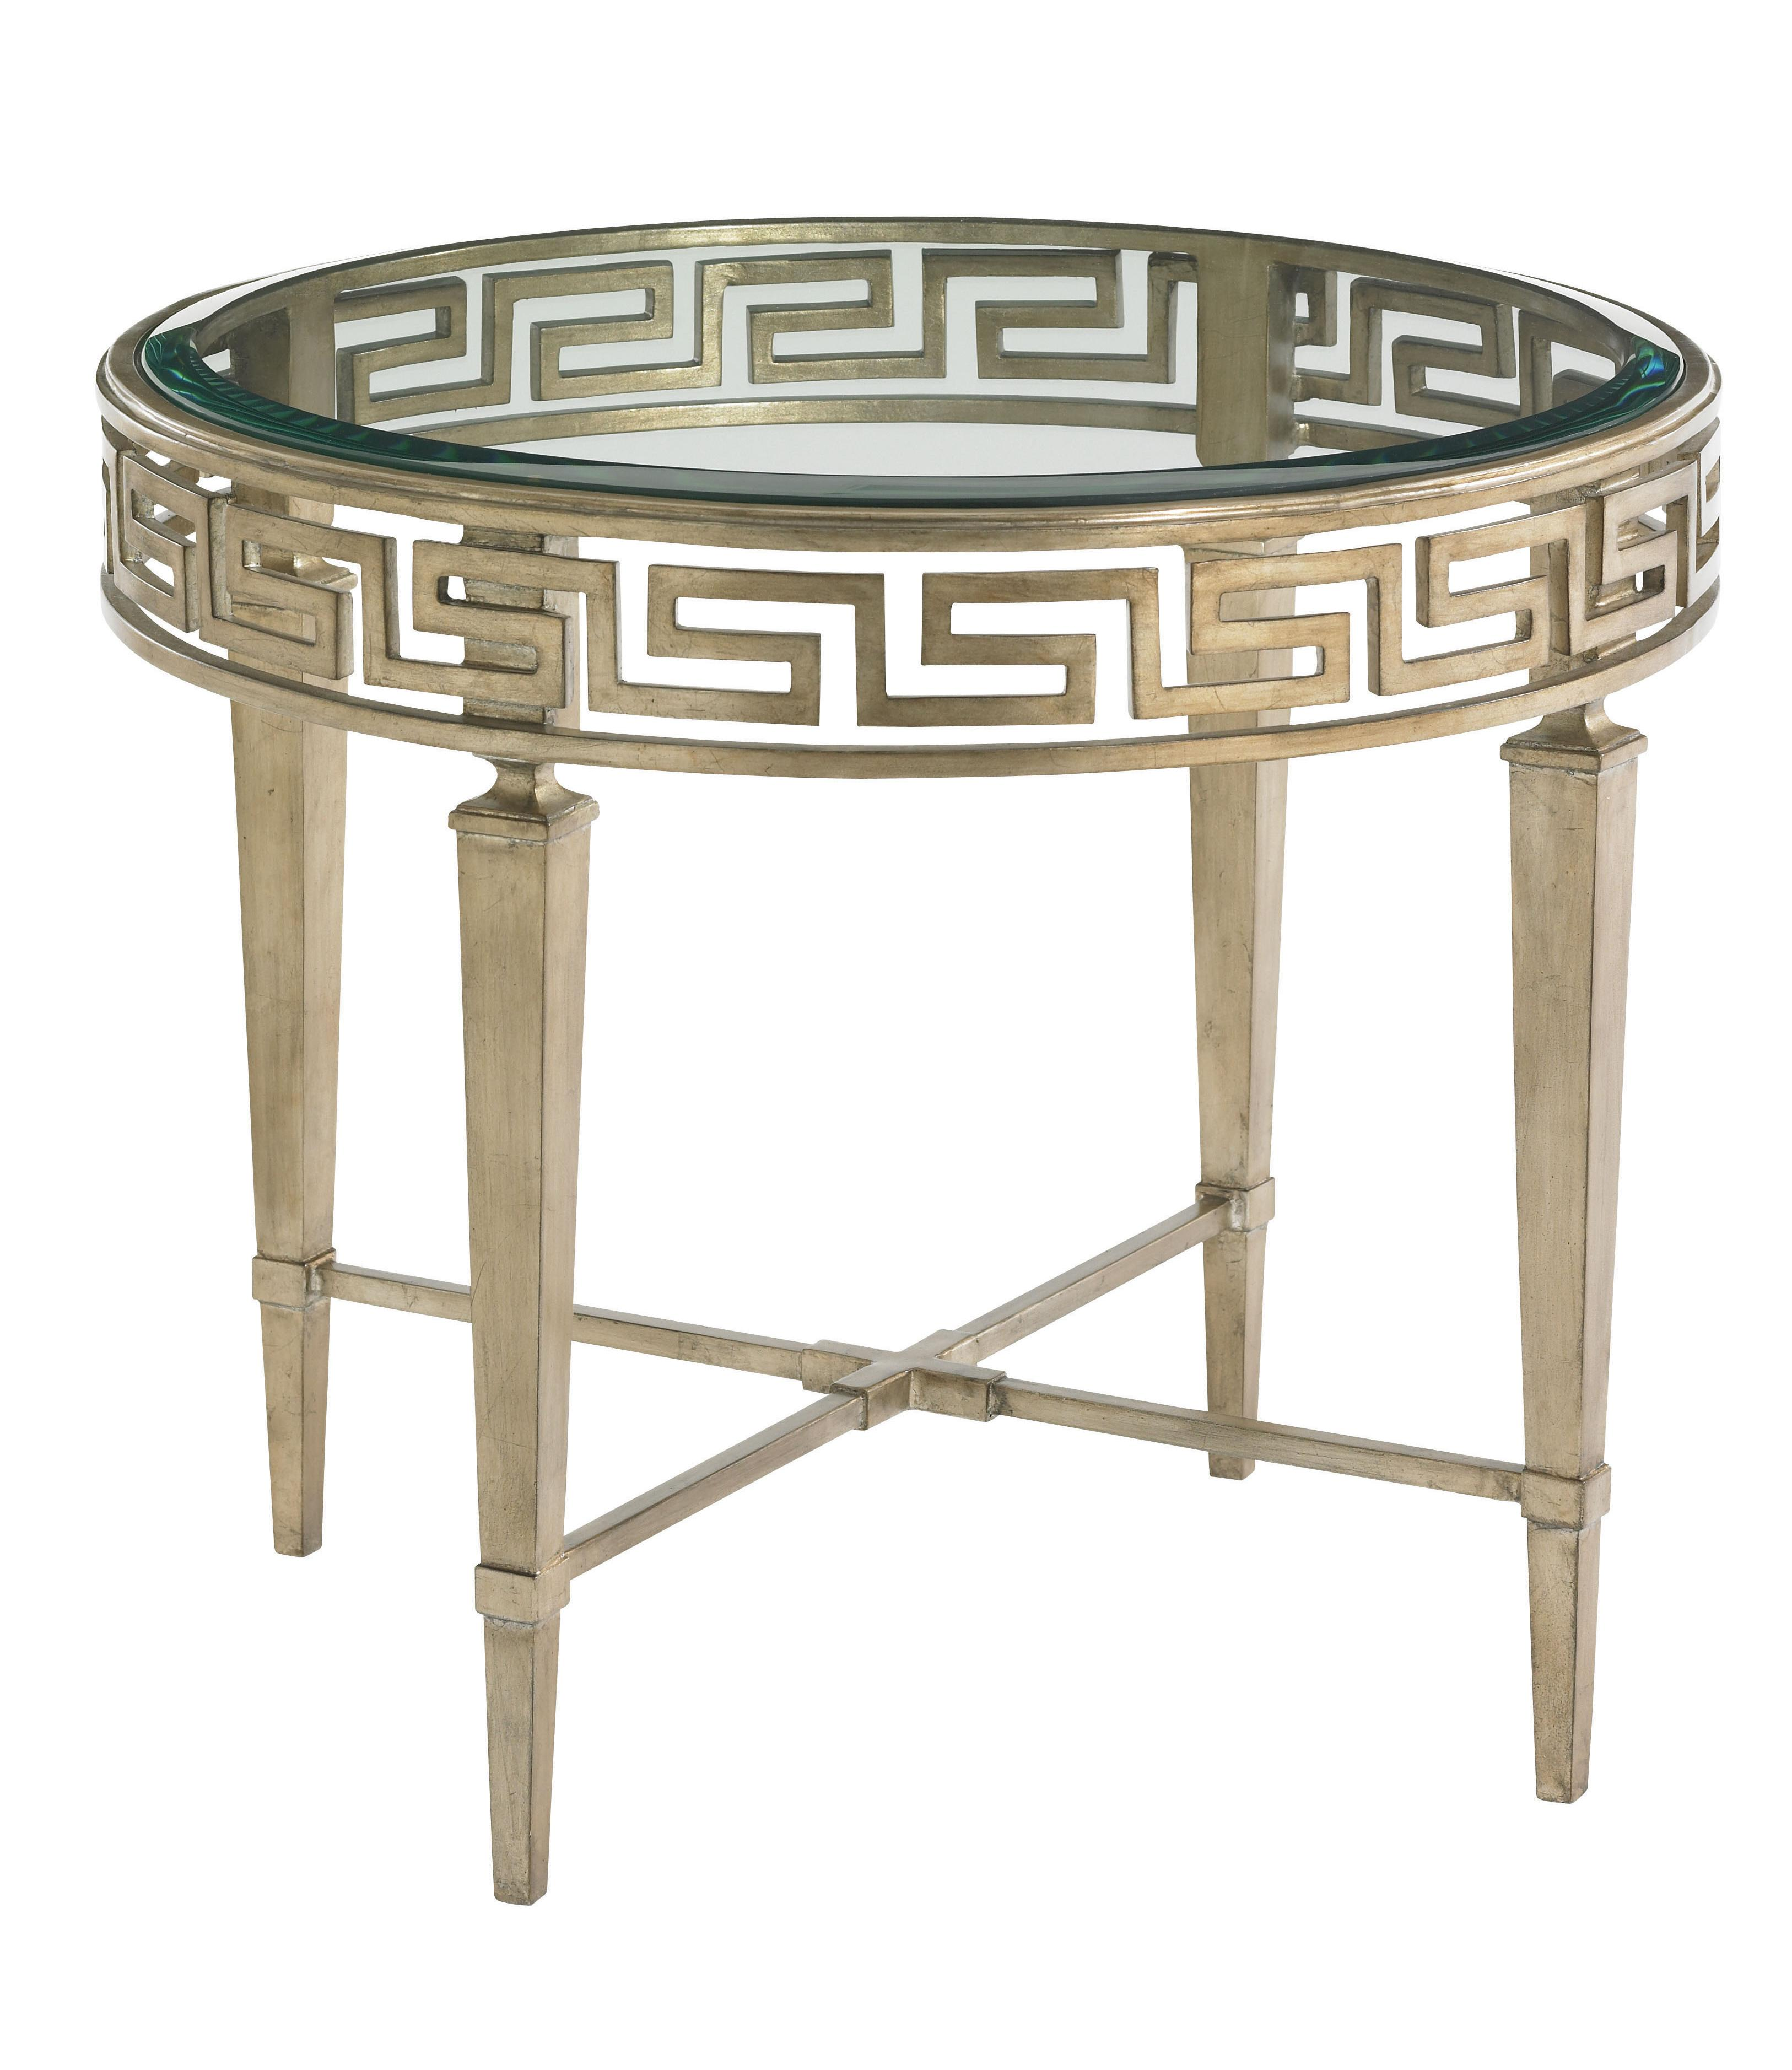 Tower Place Aston Round Lamp Table by Lexington at Baer's Furniture